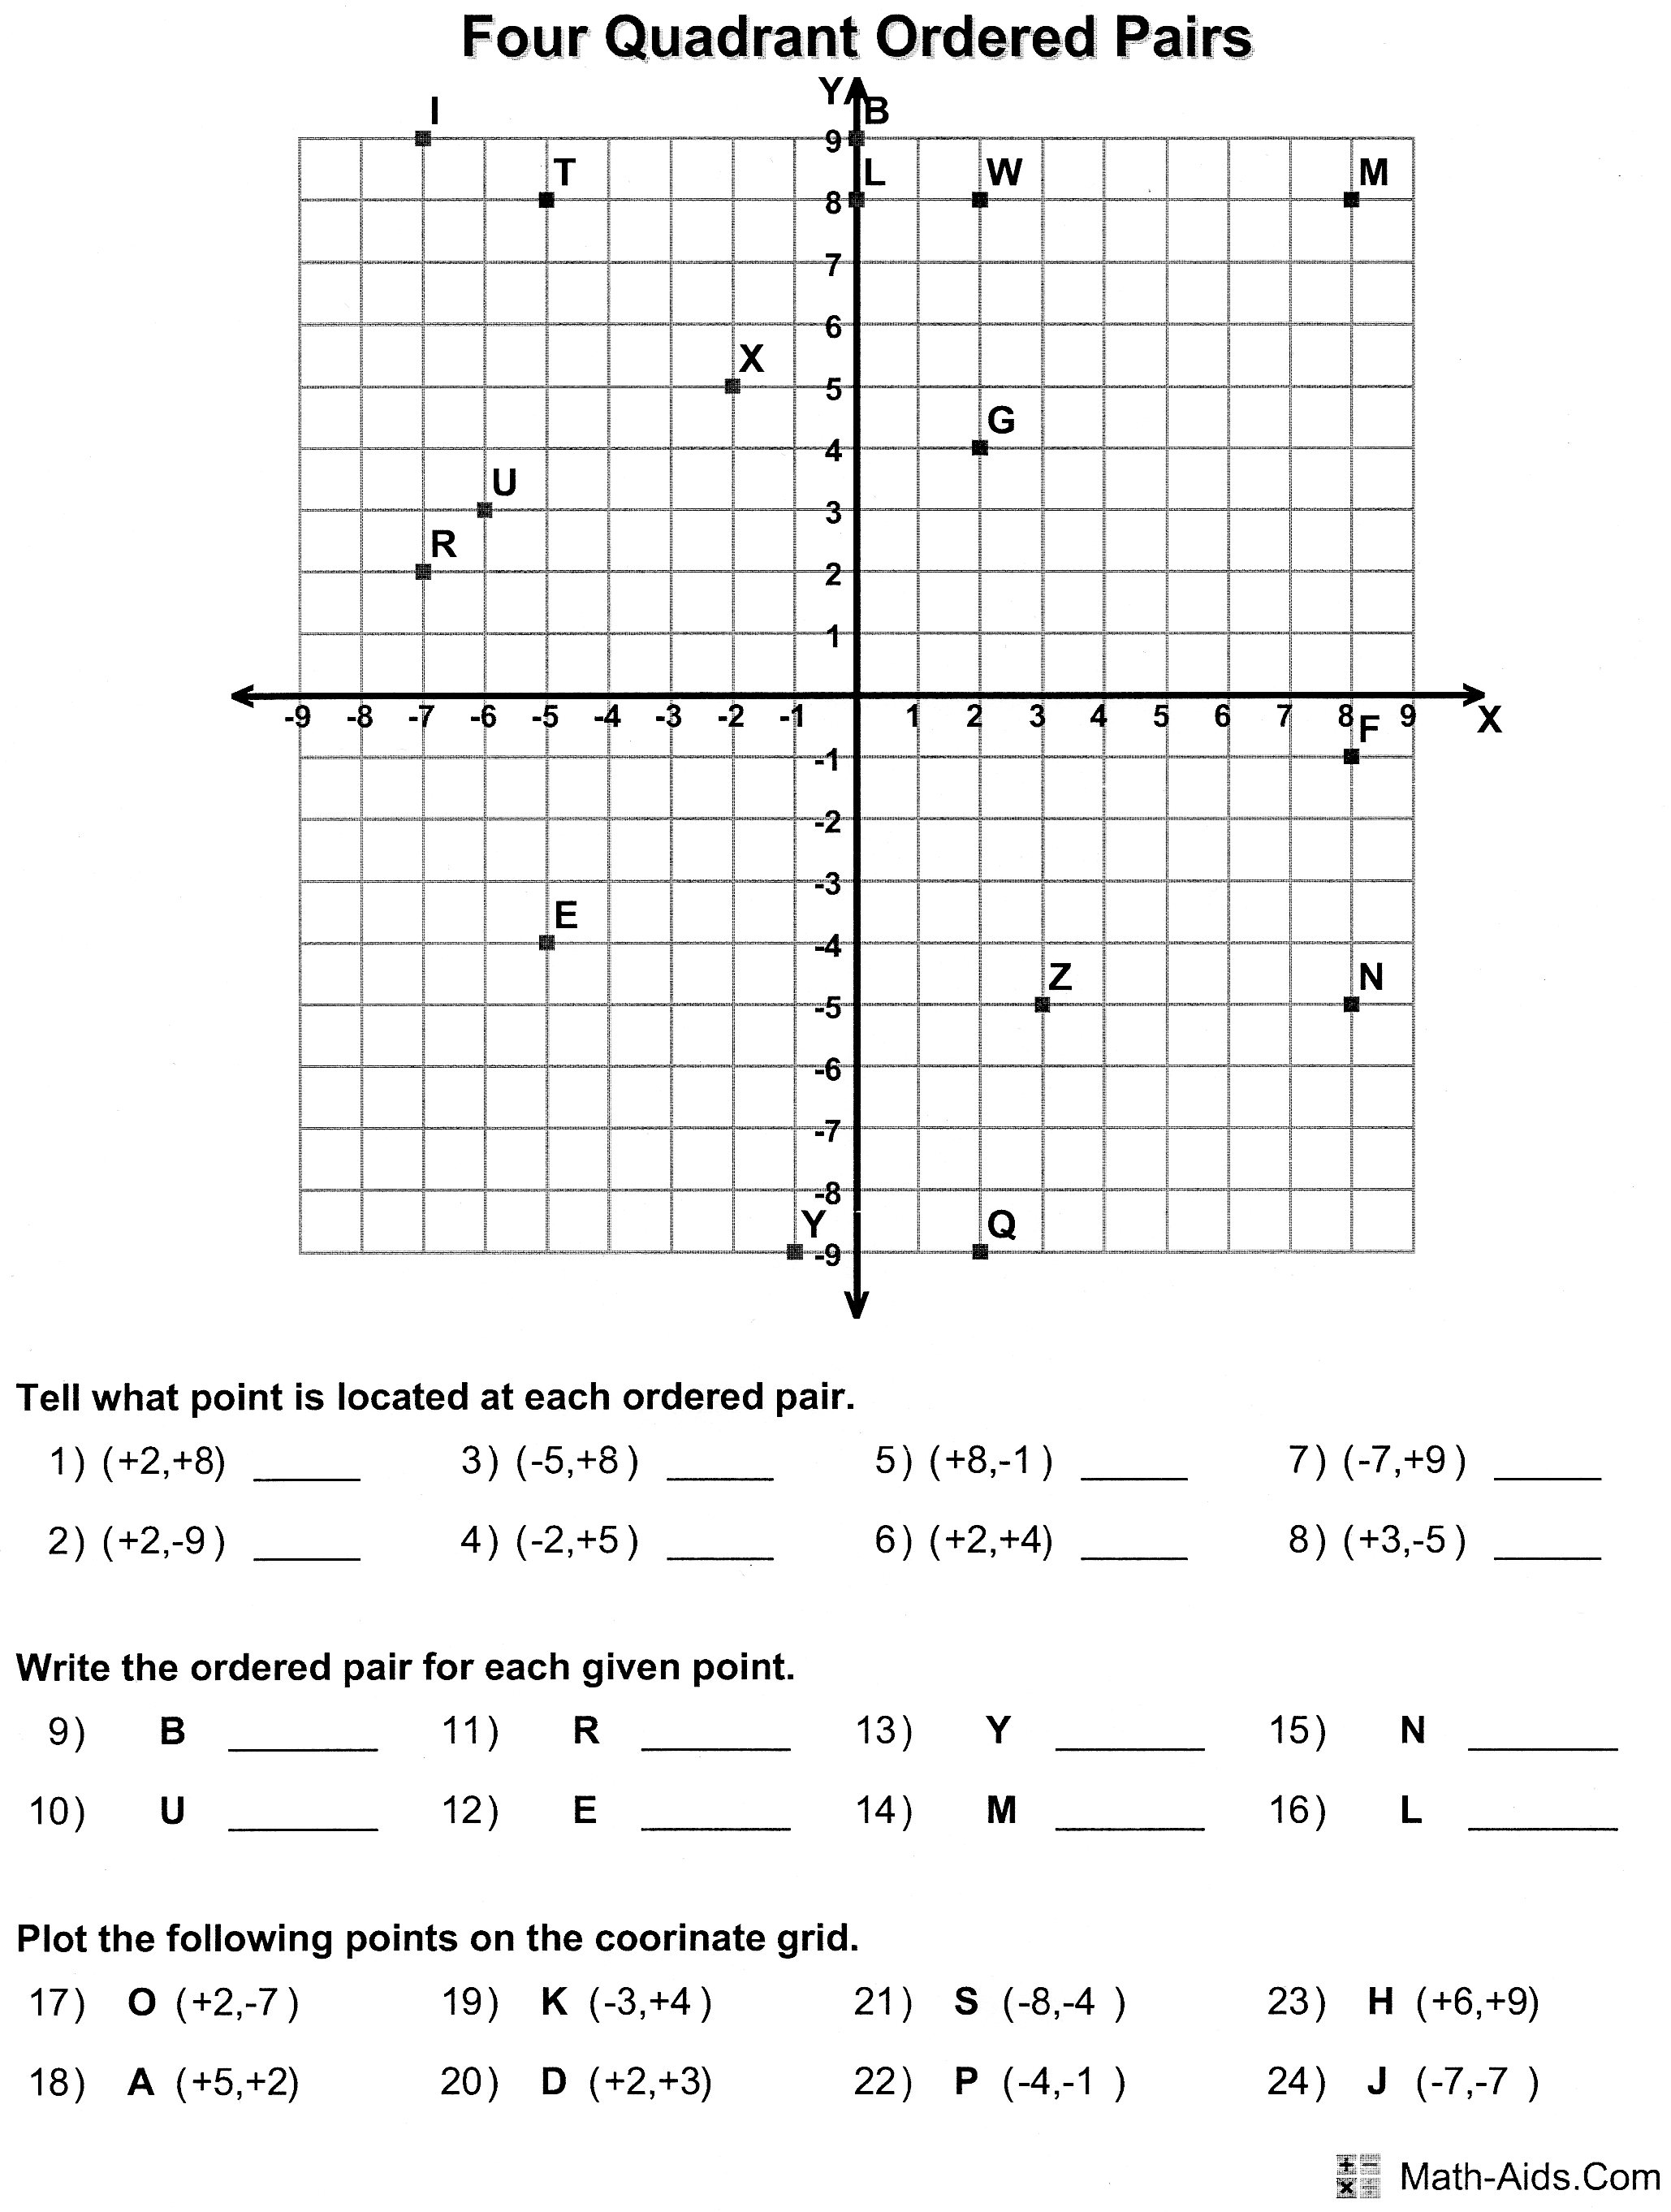 Horse Coordinate Plane Worksheet